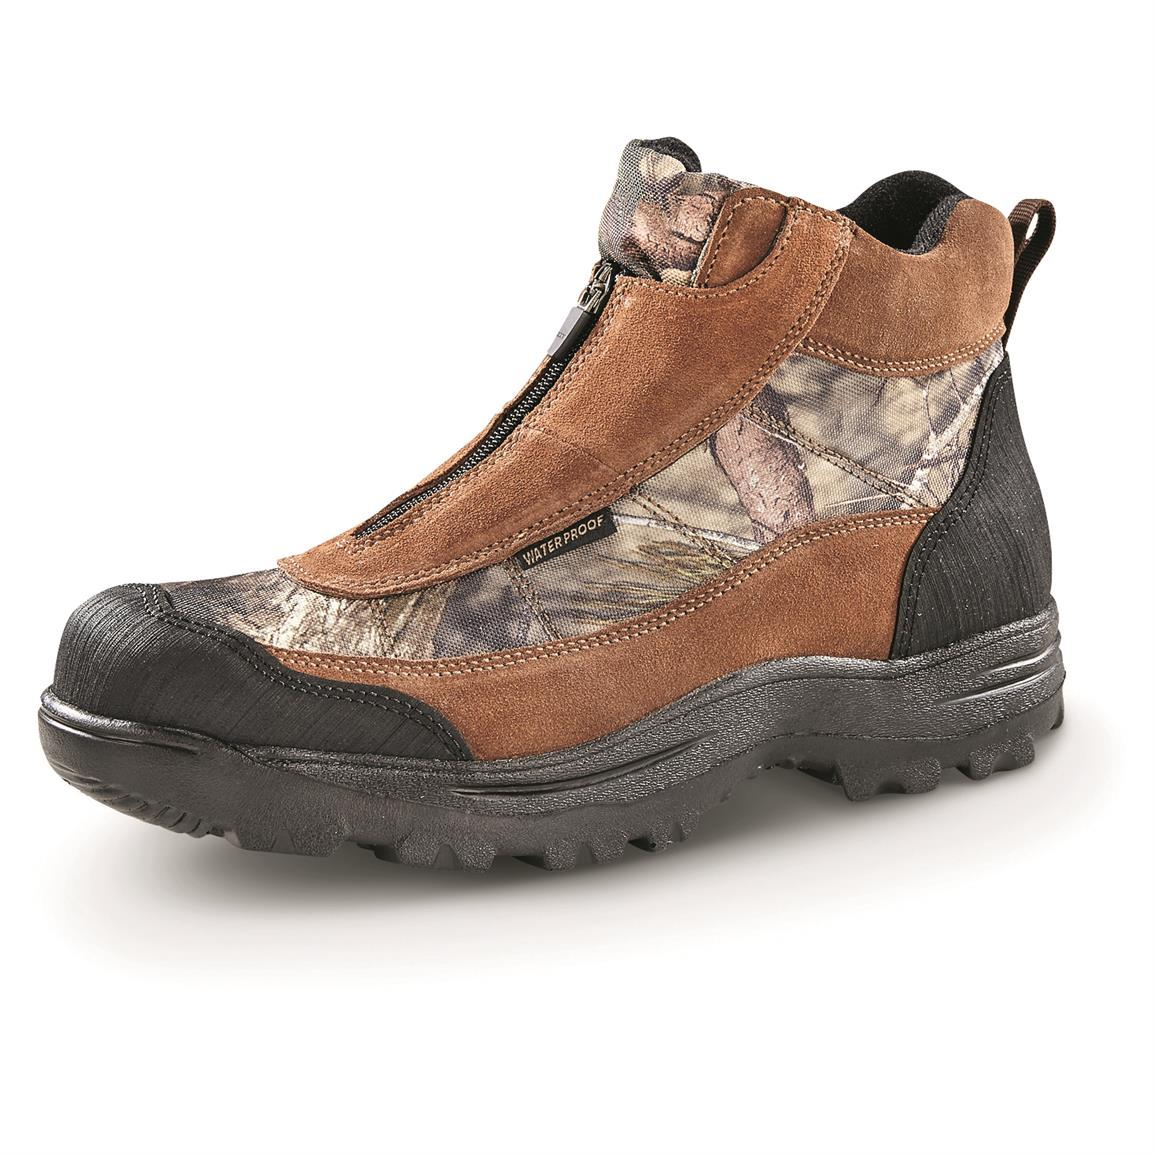 Guide Gear Men's Silvercliff II Mid Waterproof Hiking Boots, Mossy Oak Break-Up Country